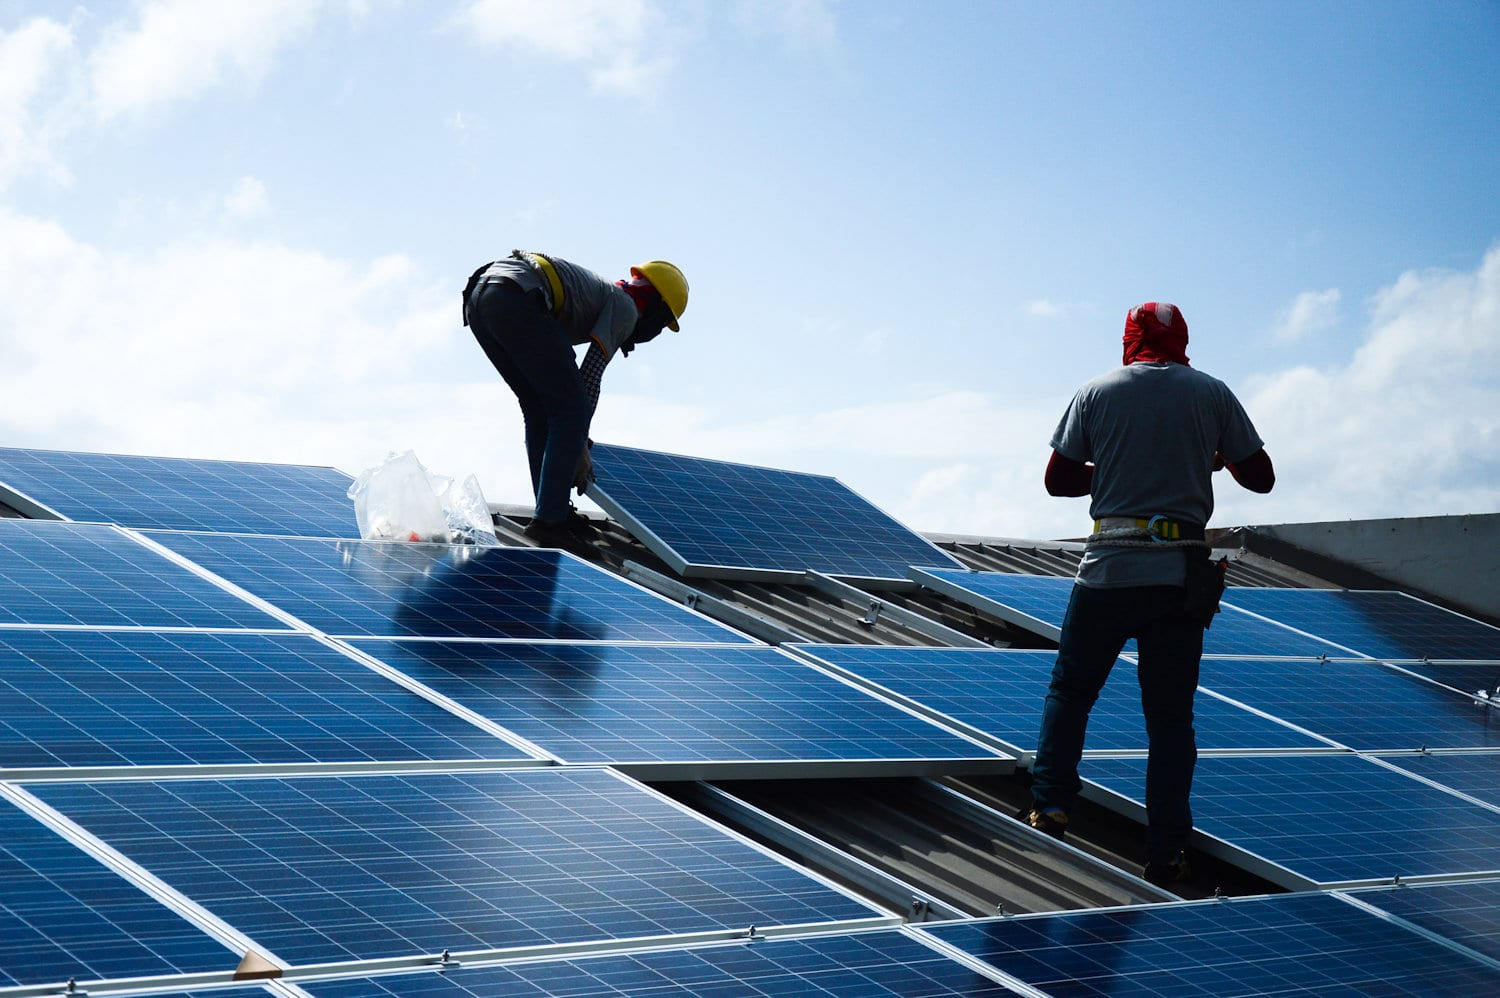 Solar Panels Installation - Find Solar Contractors - Get Your Quote